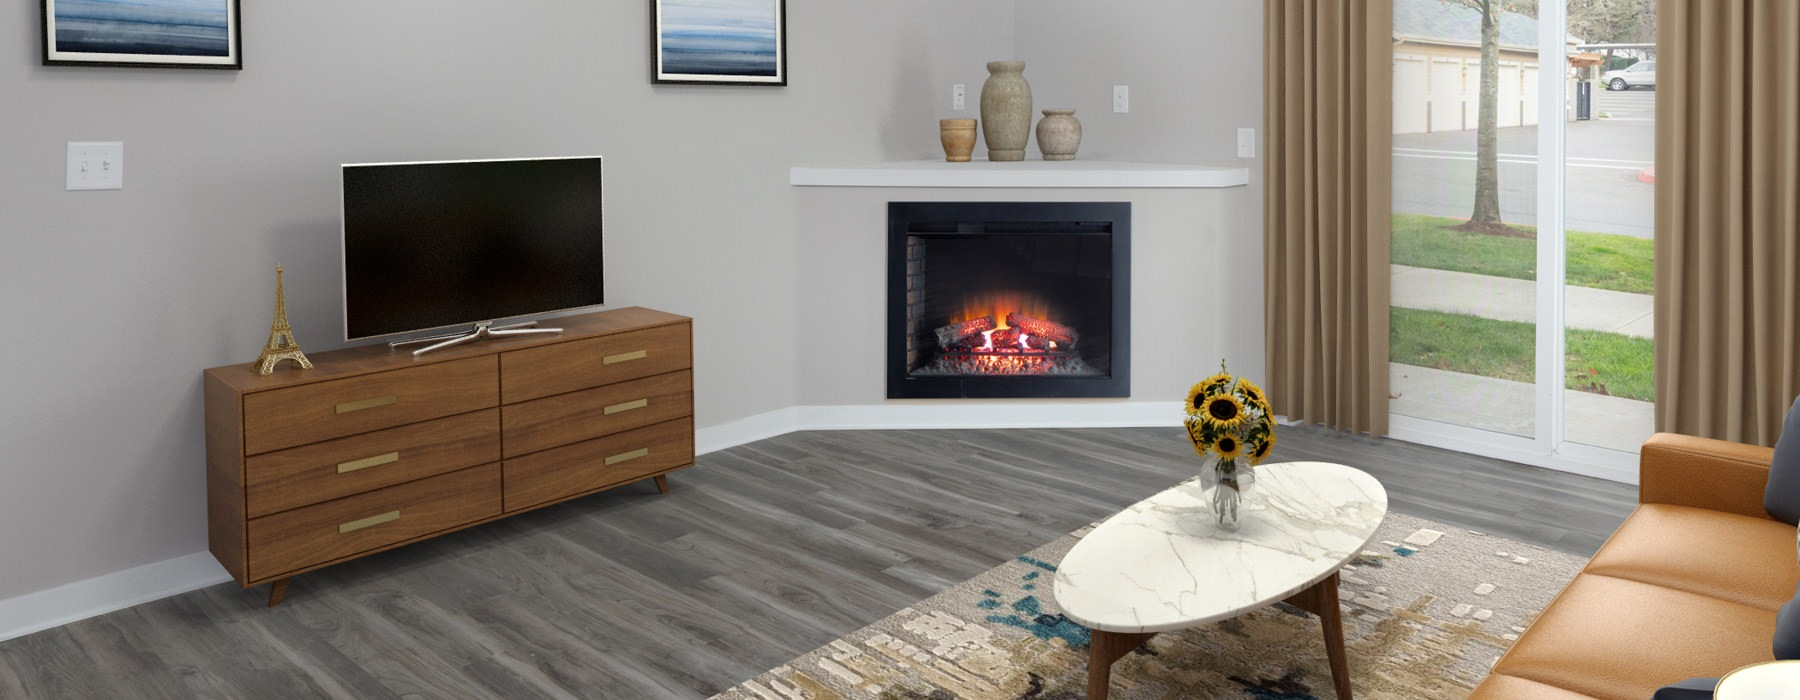 fireplace in spacious living room with large windows